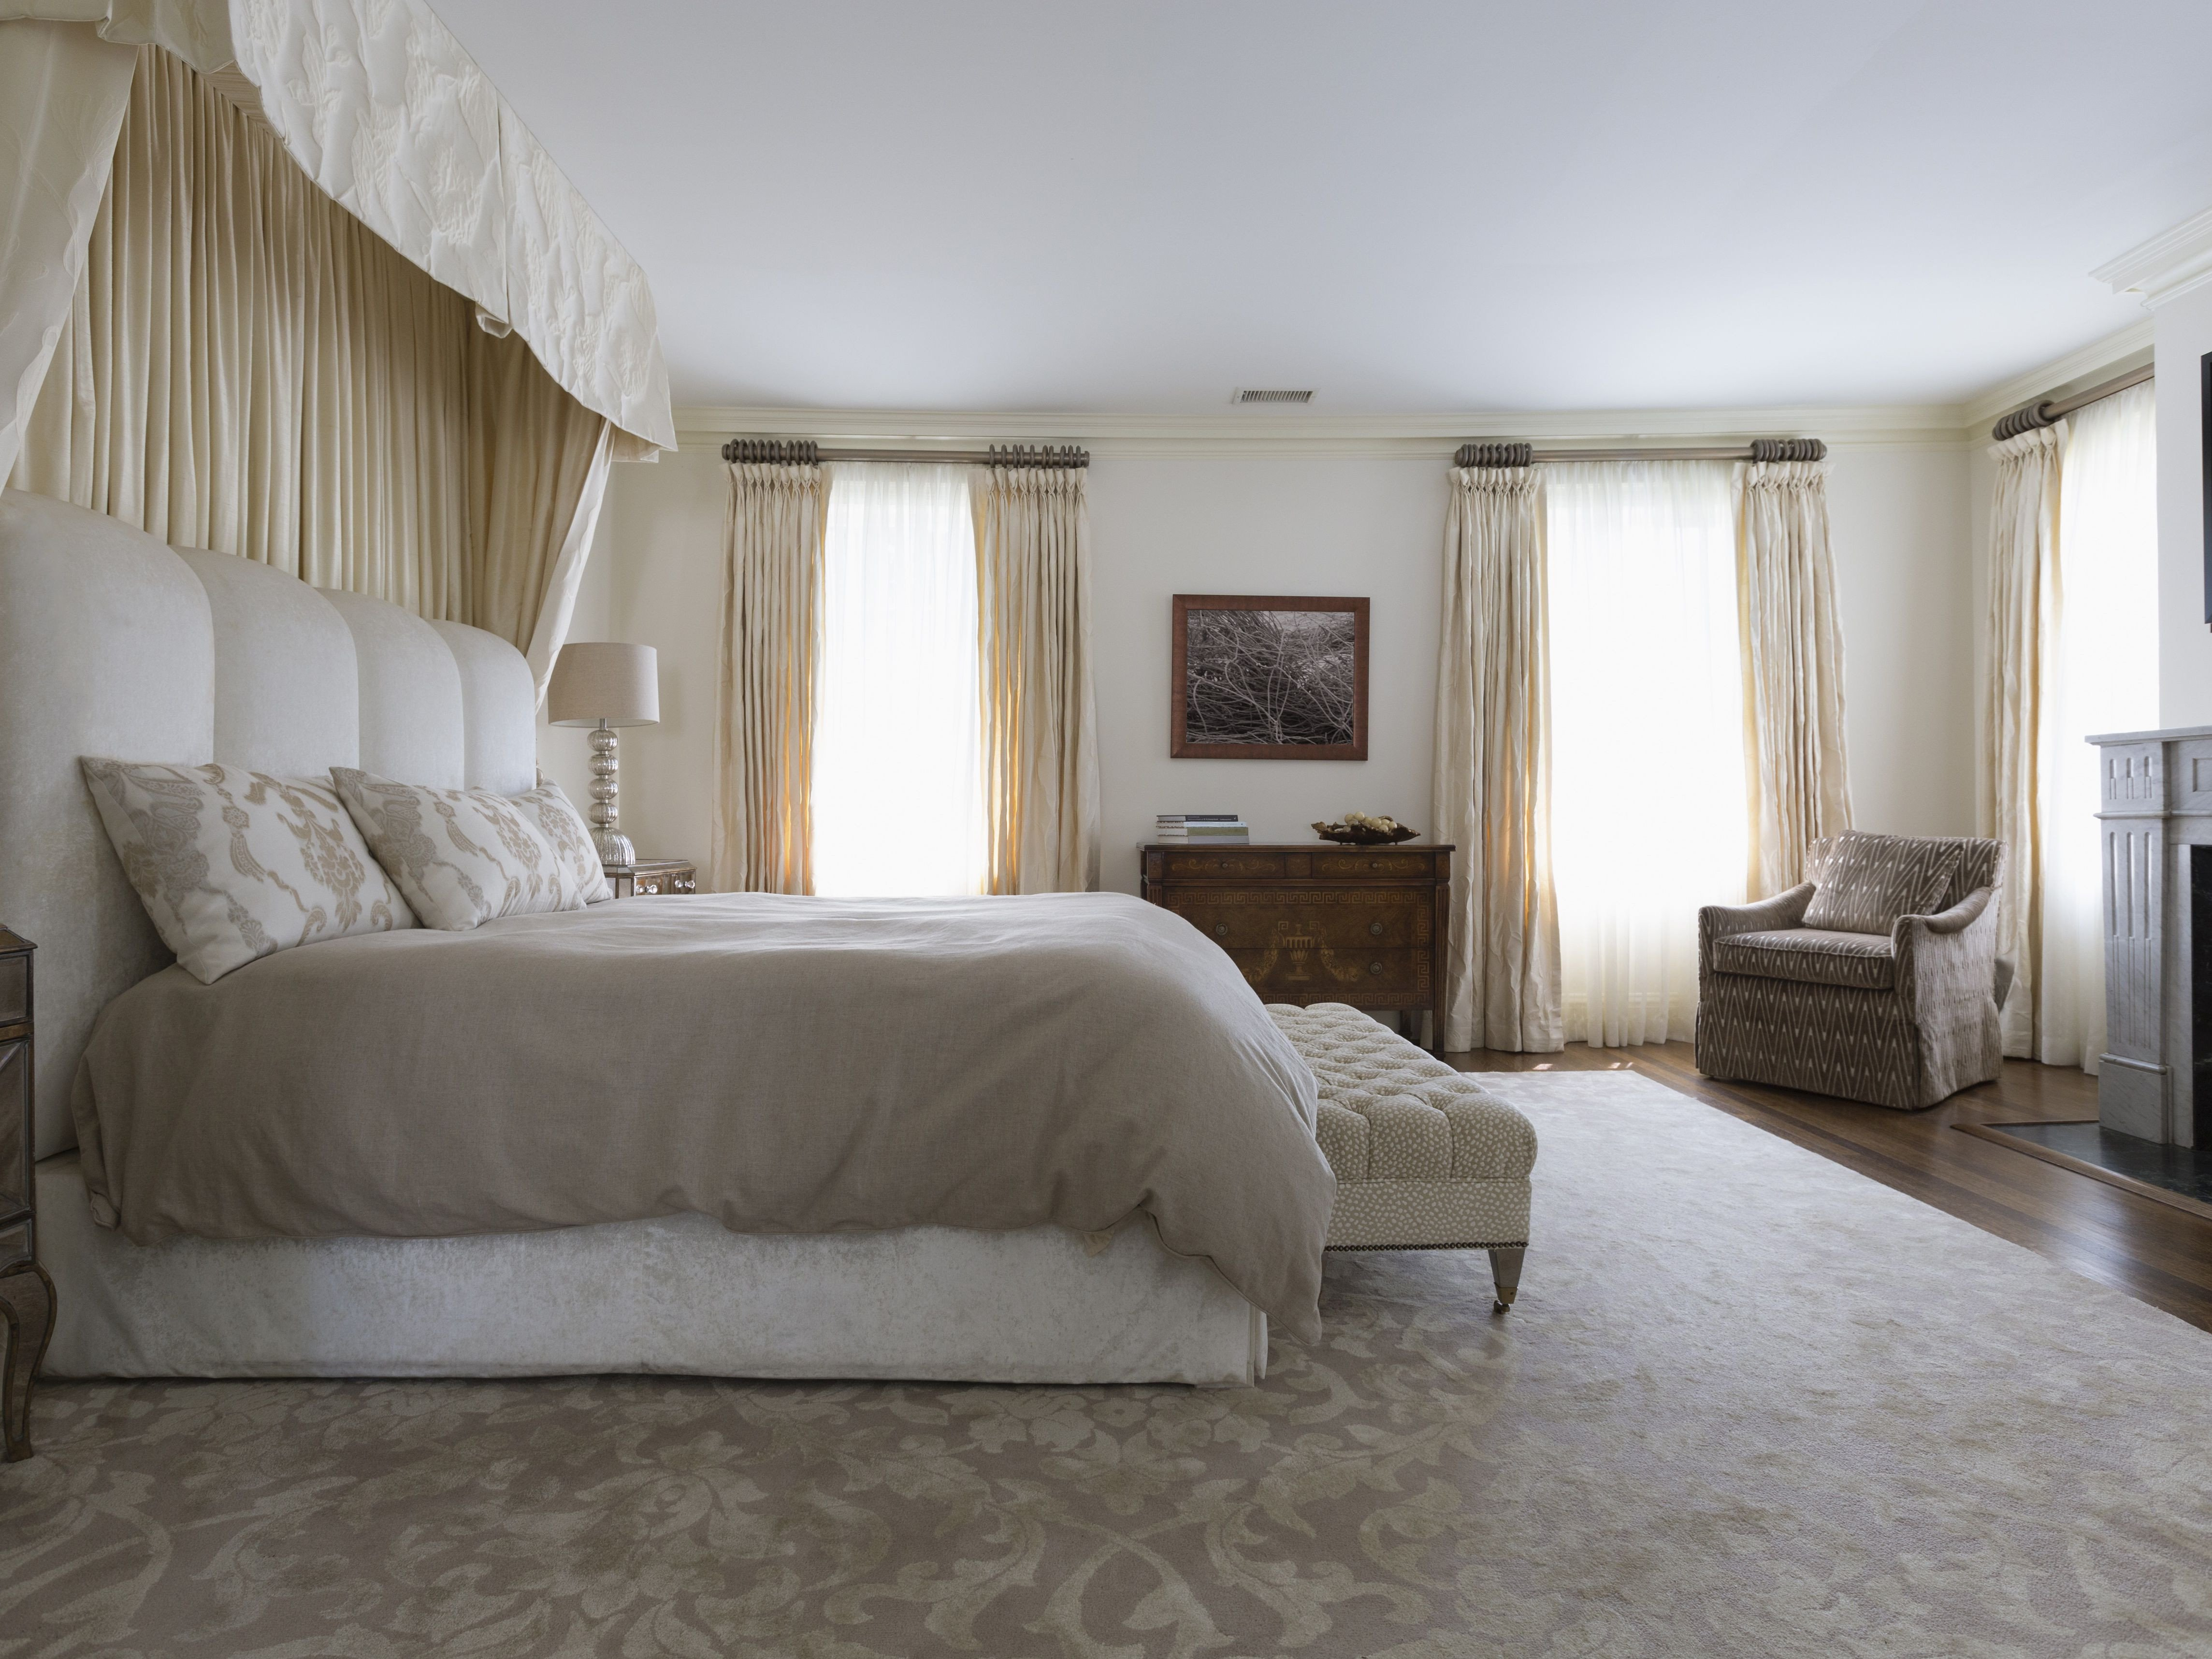 Bedroom area Rug Placement Elegant How to Choose the Right area Rug for Under Your Bed